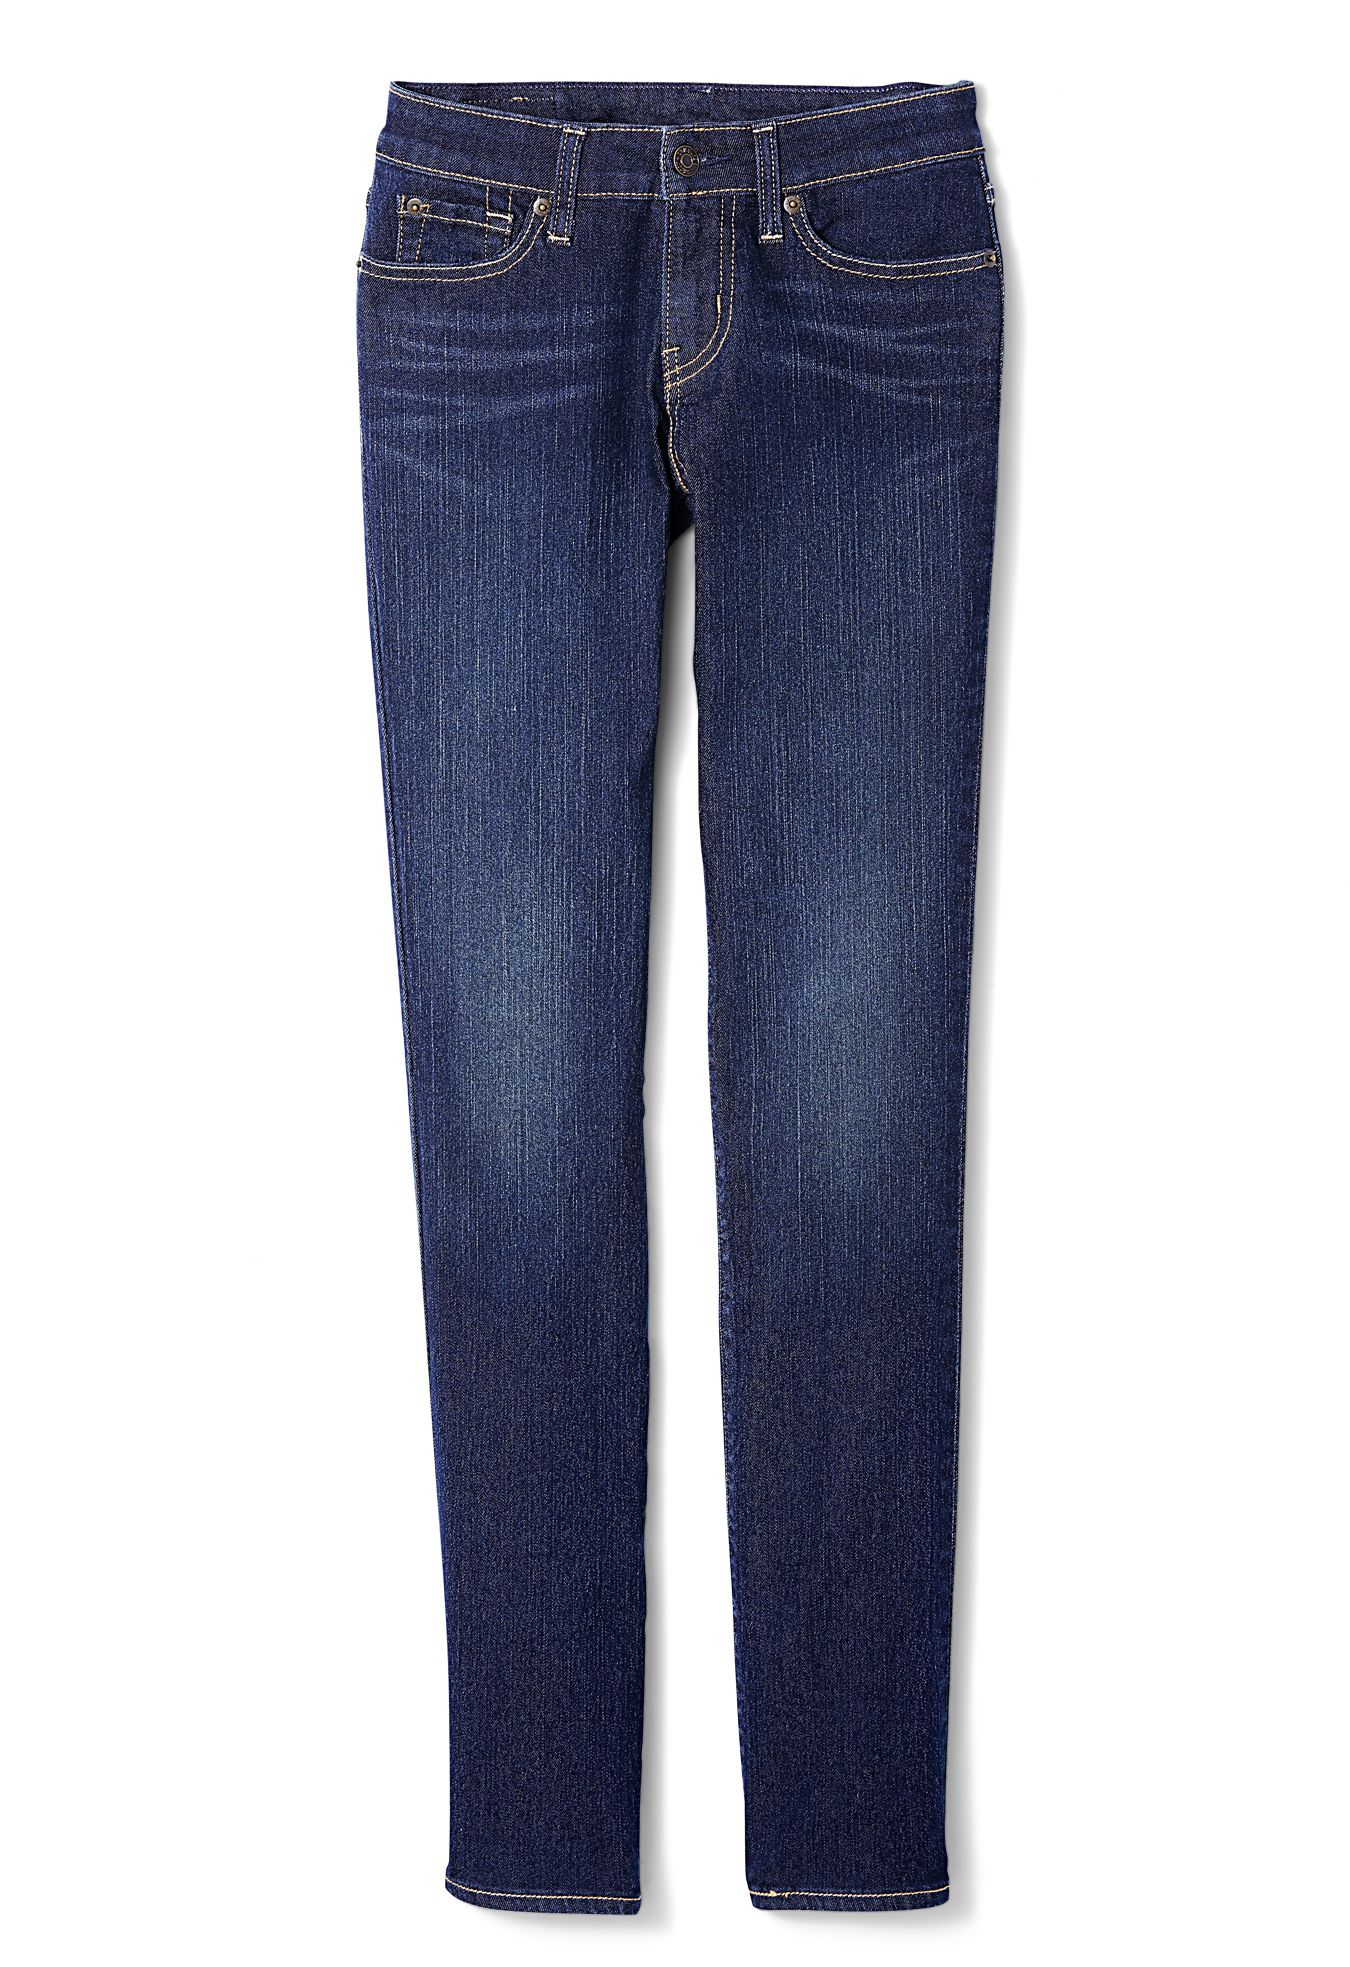 db3036f3b7f Best Jeans for Your Body Type - Flattering Jeans for Women